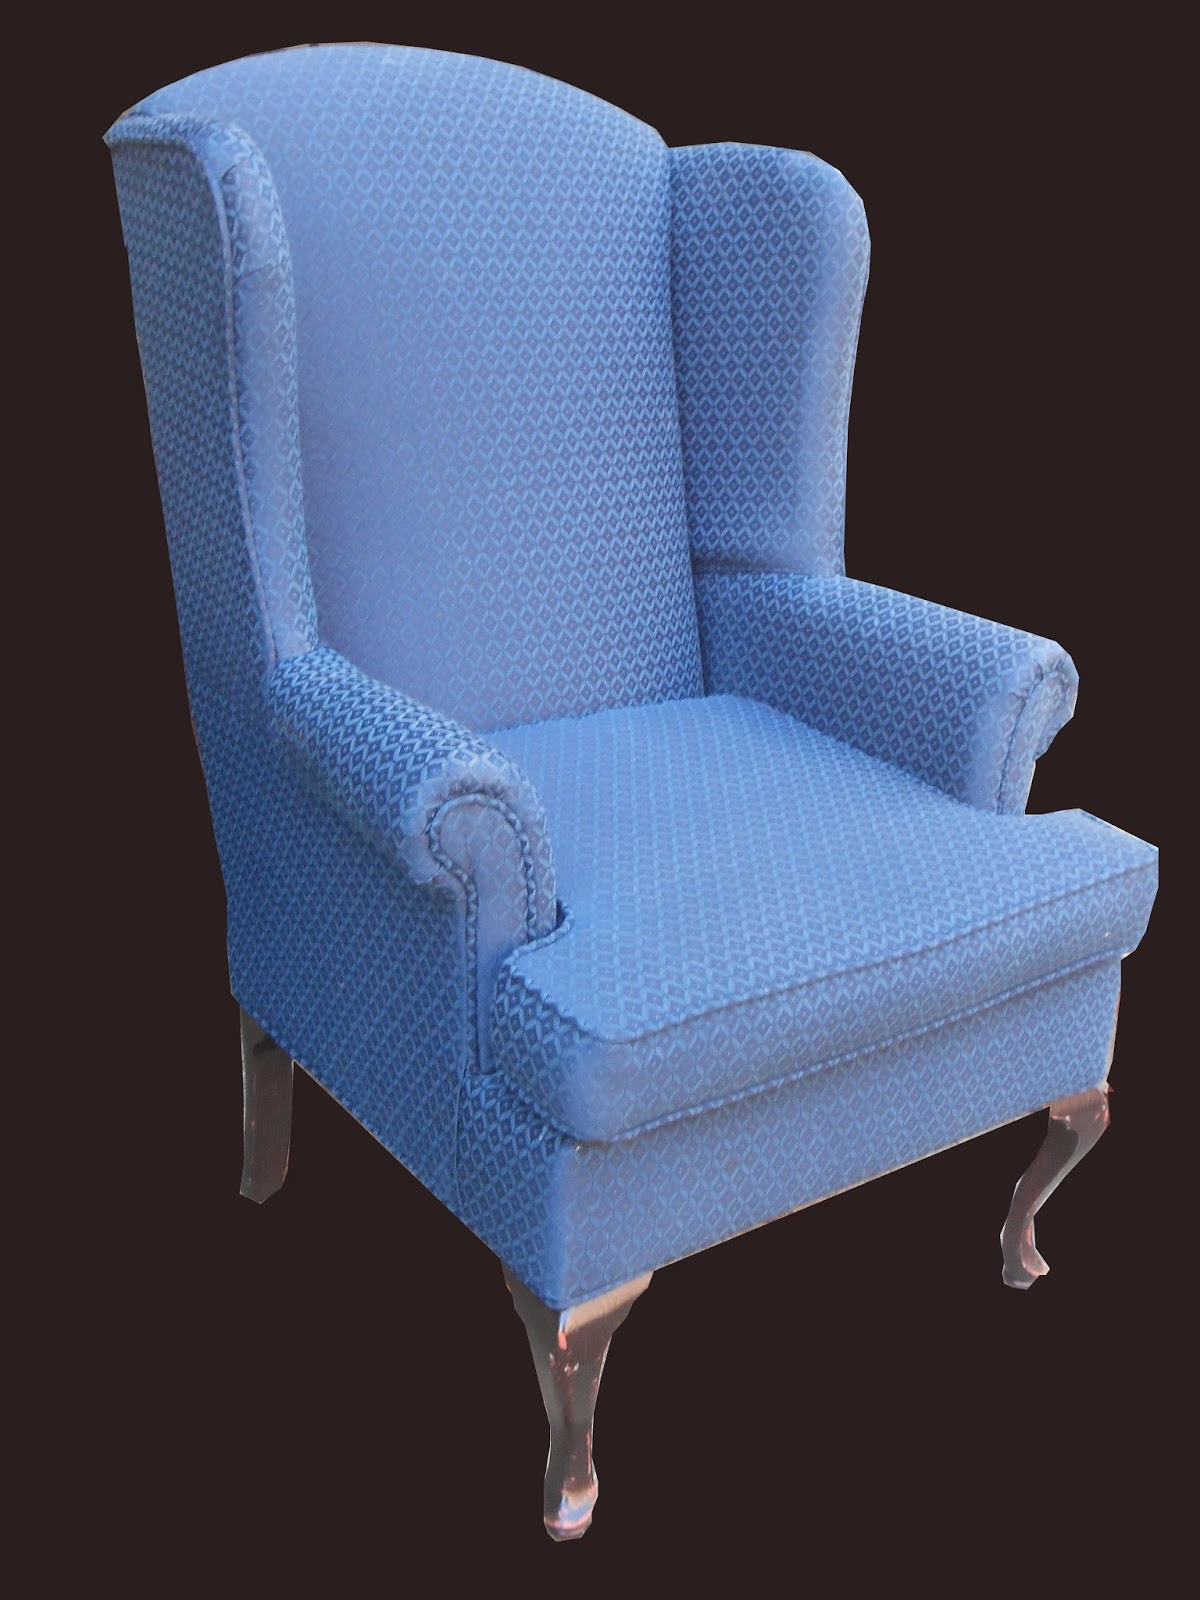 Uhuru Furniture Amp Collectibles Blue Wingback Chair Sold